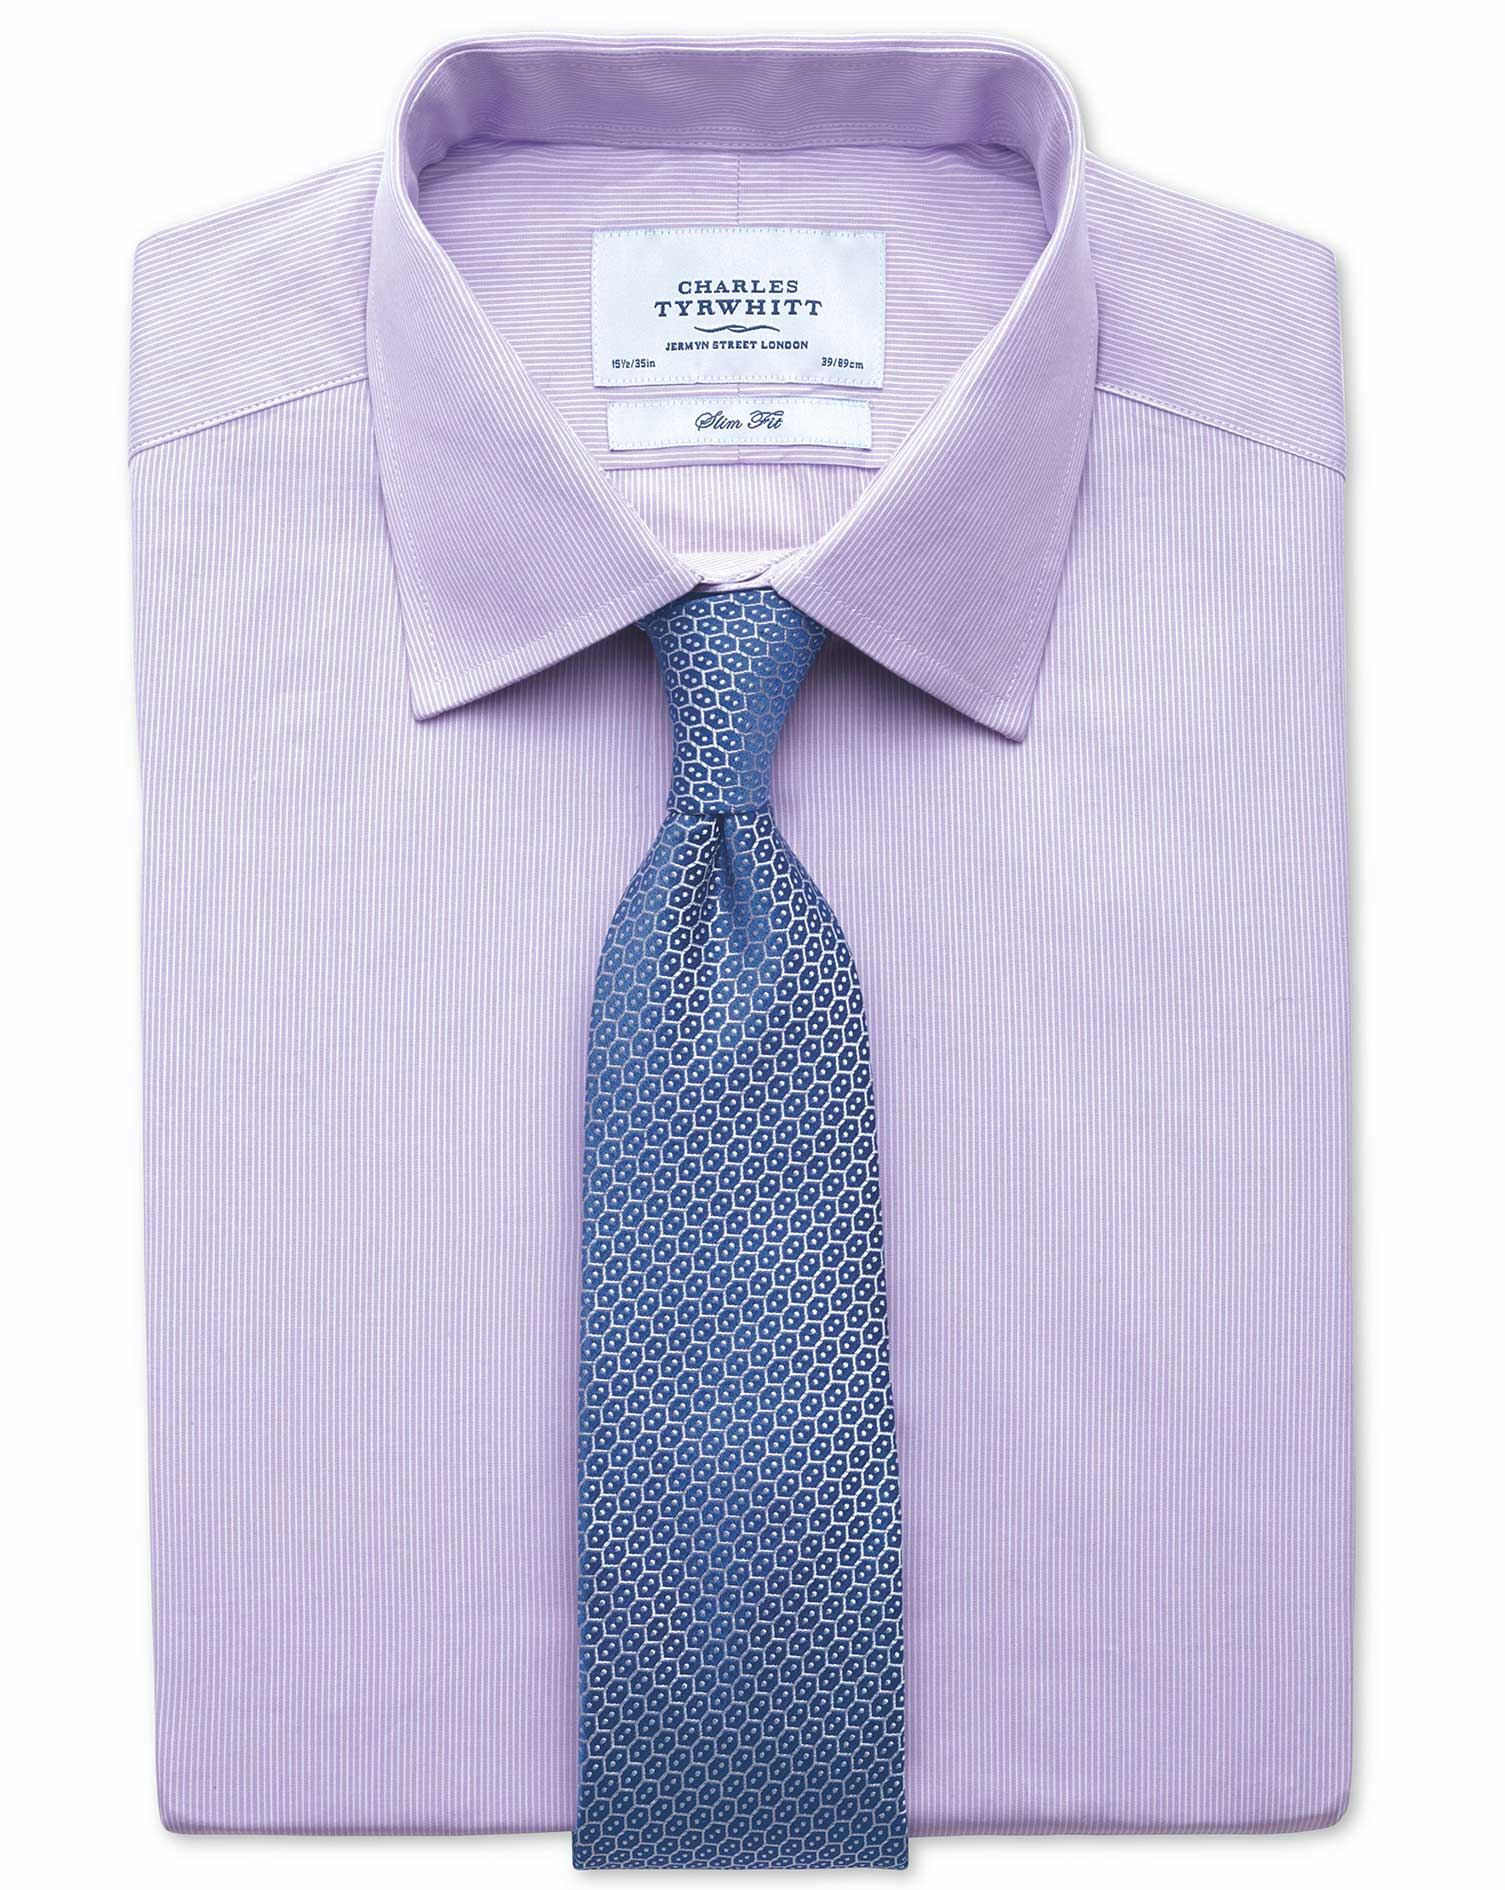 Classic Fit Fine Stripe Lilac Cotton Formal Shirt Double Cuff Size 15/33 by Charles Tyrwhitt